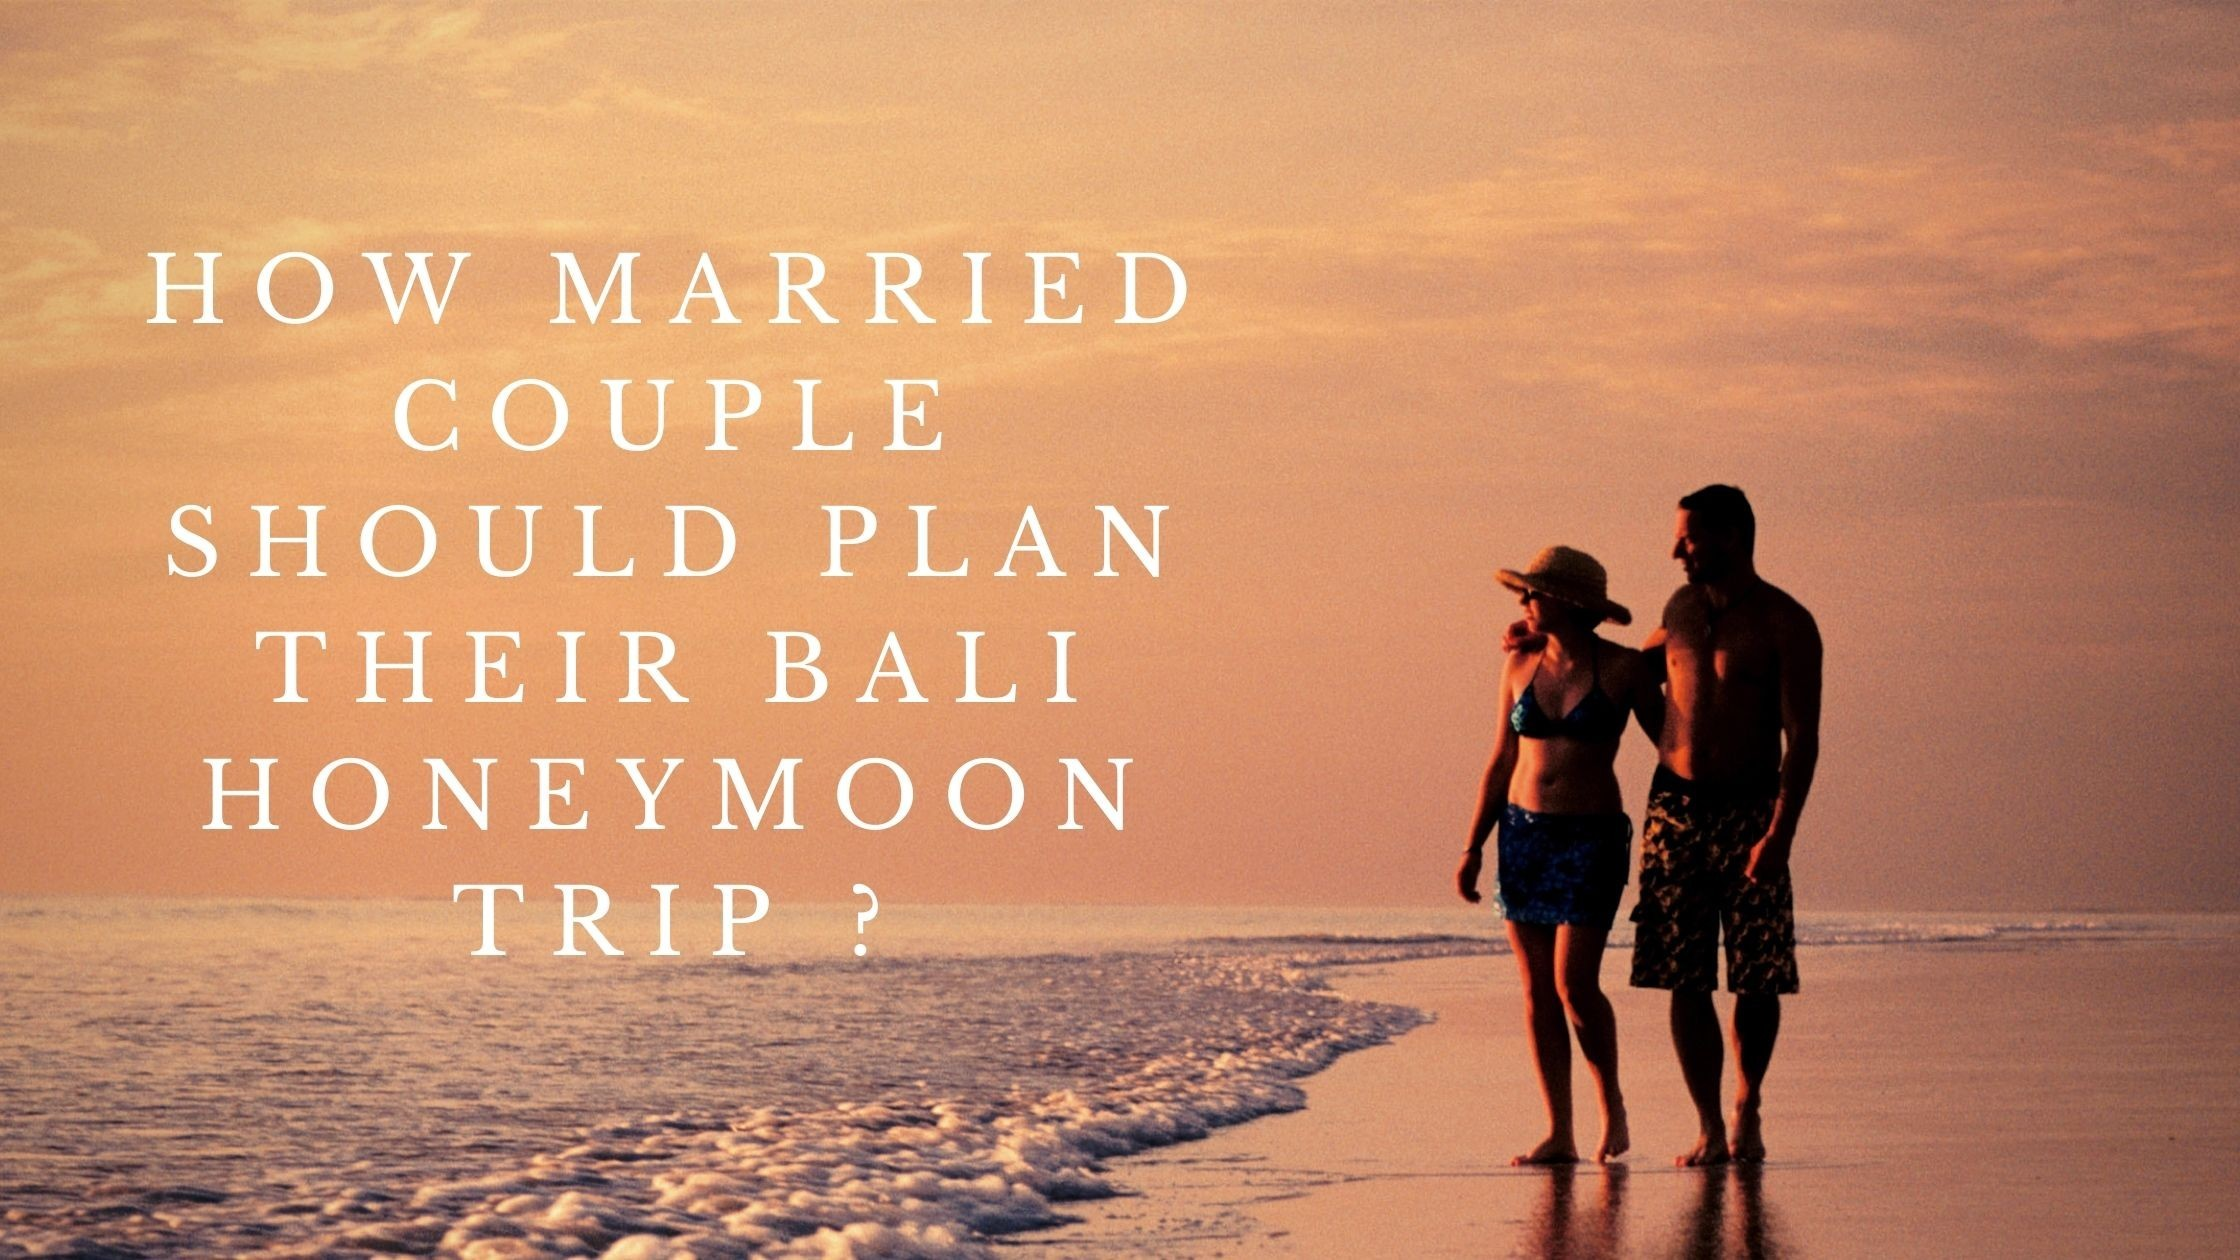 How married couple should plan their Bali honeymoon trip ?